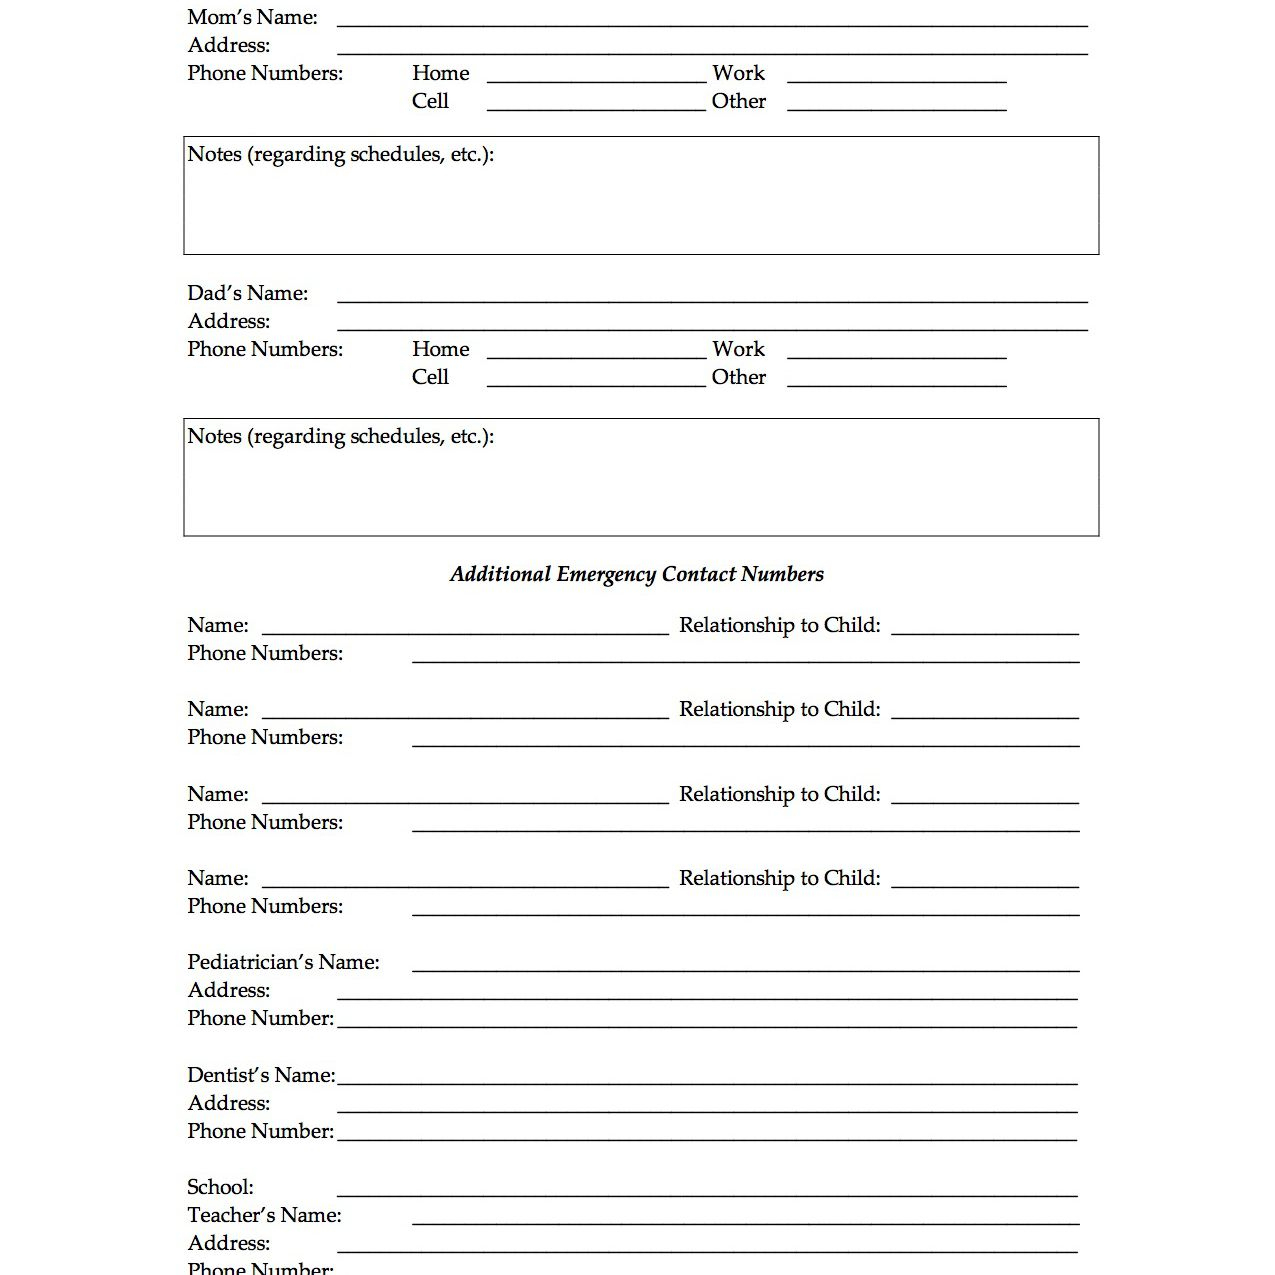 Free Printable Forms For Single Parents - Free Printable Parenting Plan